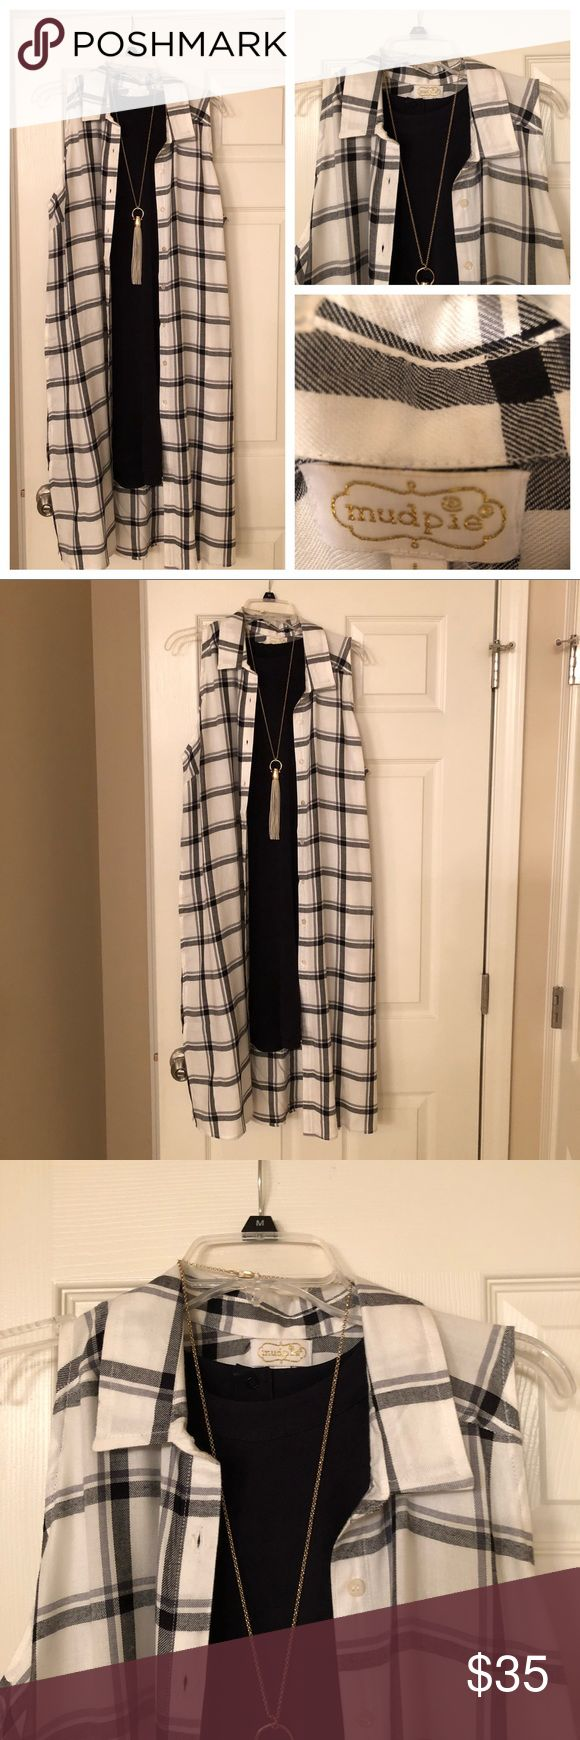 "💥SALE💥 NWT🎀MUD PIE🎀 DUSTER VEST 43"" long duster/ vest from Mud Pie.  Would look cute over shorts and a t-shirt too! Mud Pie Jackets & Coats Vests"